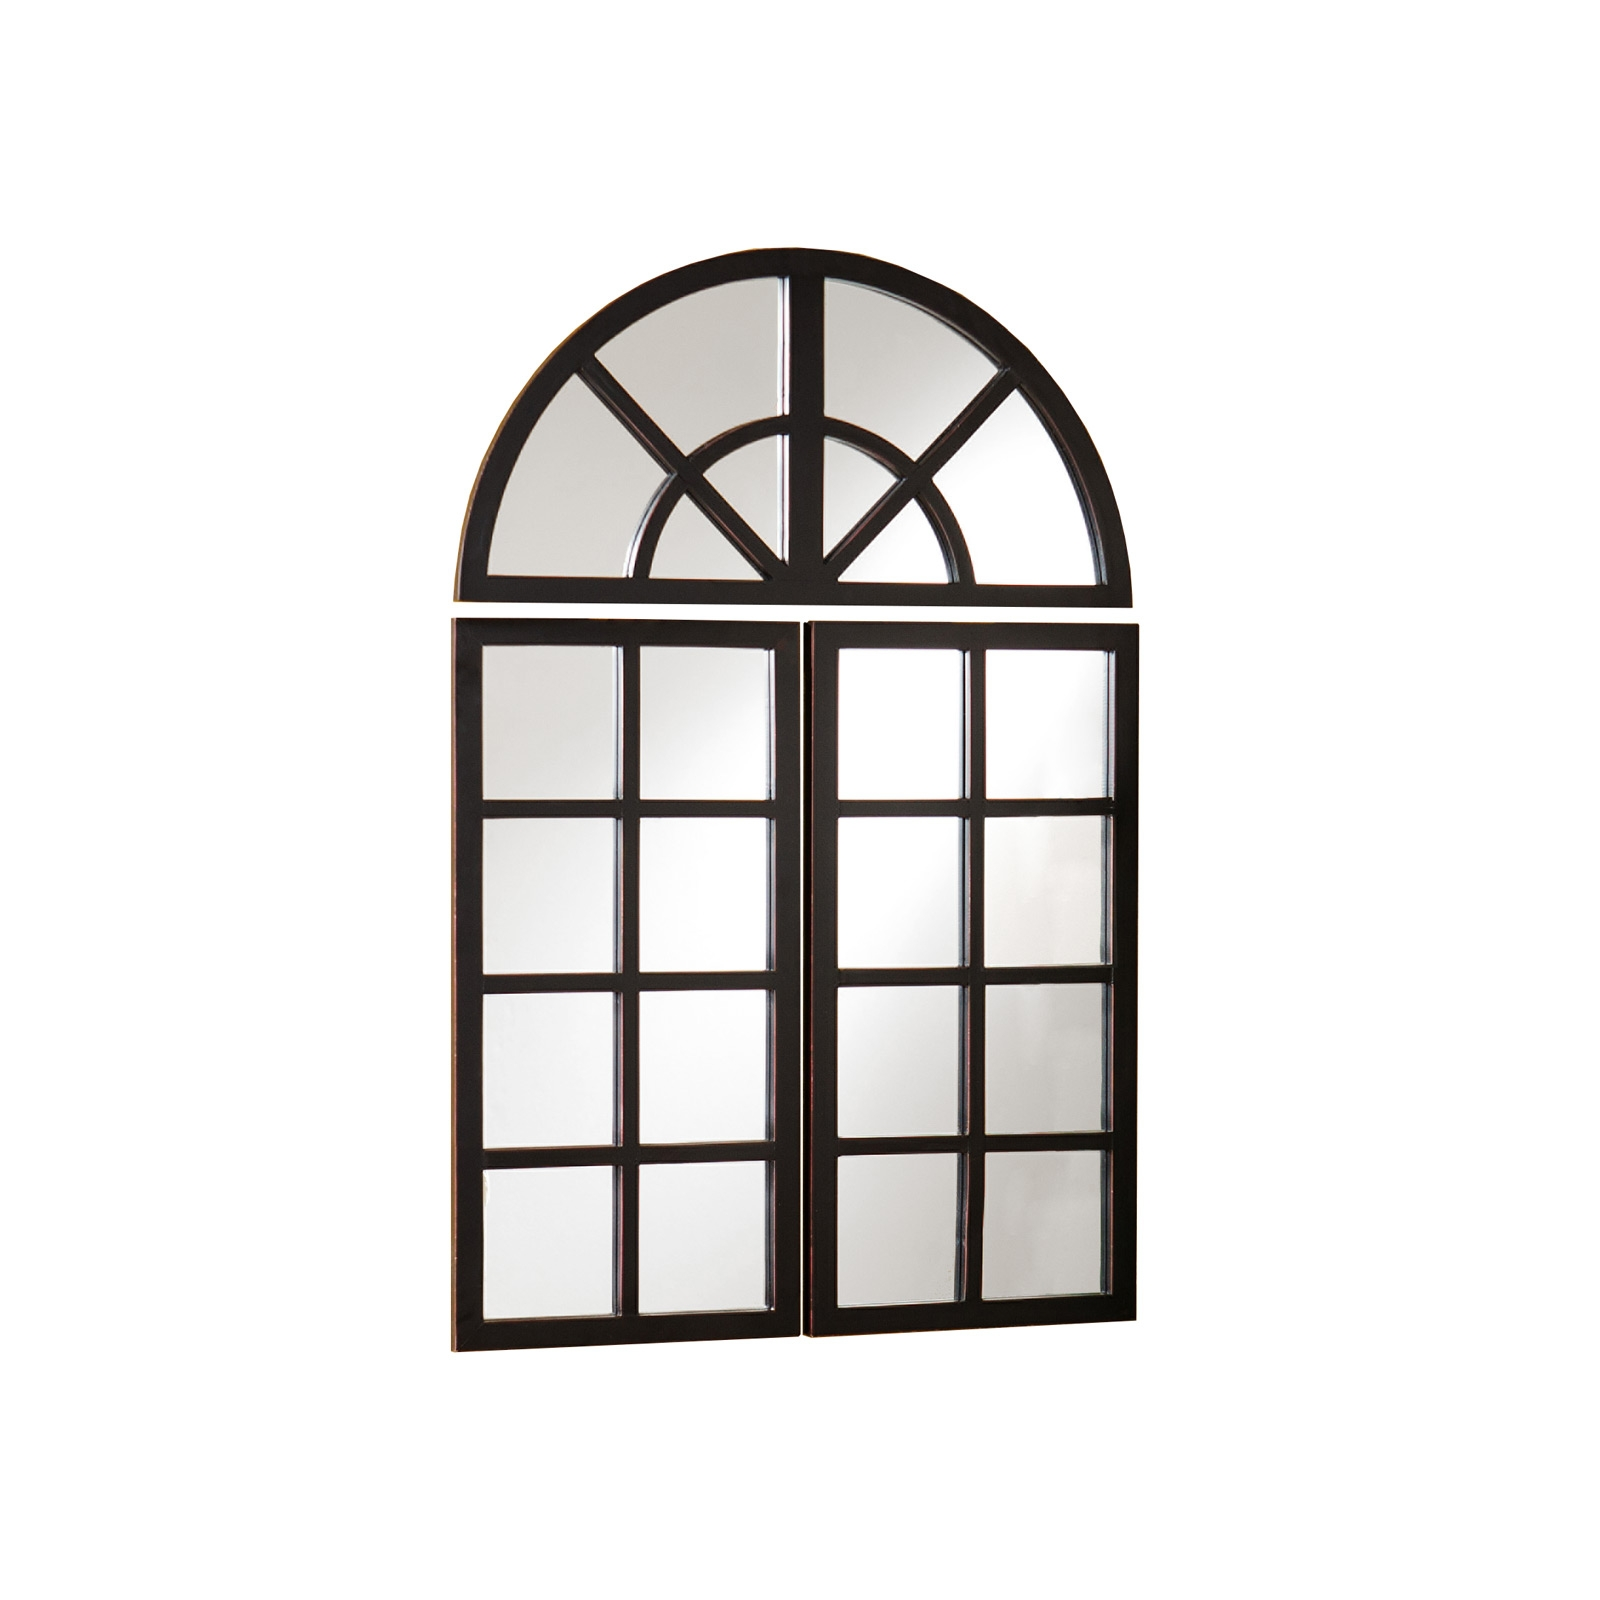 Arched Mirrored Window Panes Diy Window Pane Mirror Large In White Arched Window Mirror (Image 2 of 15)